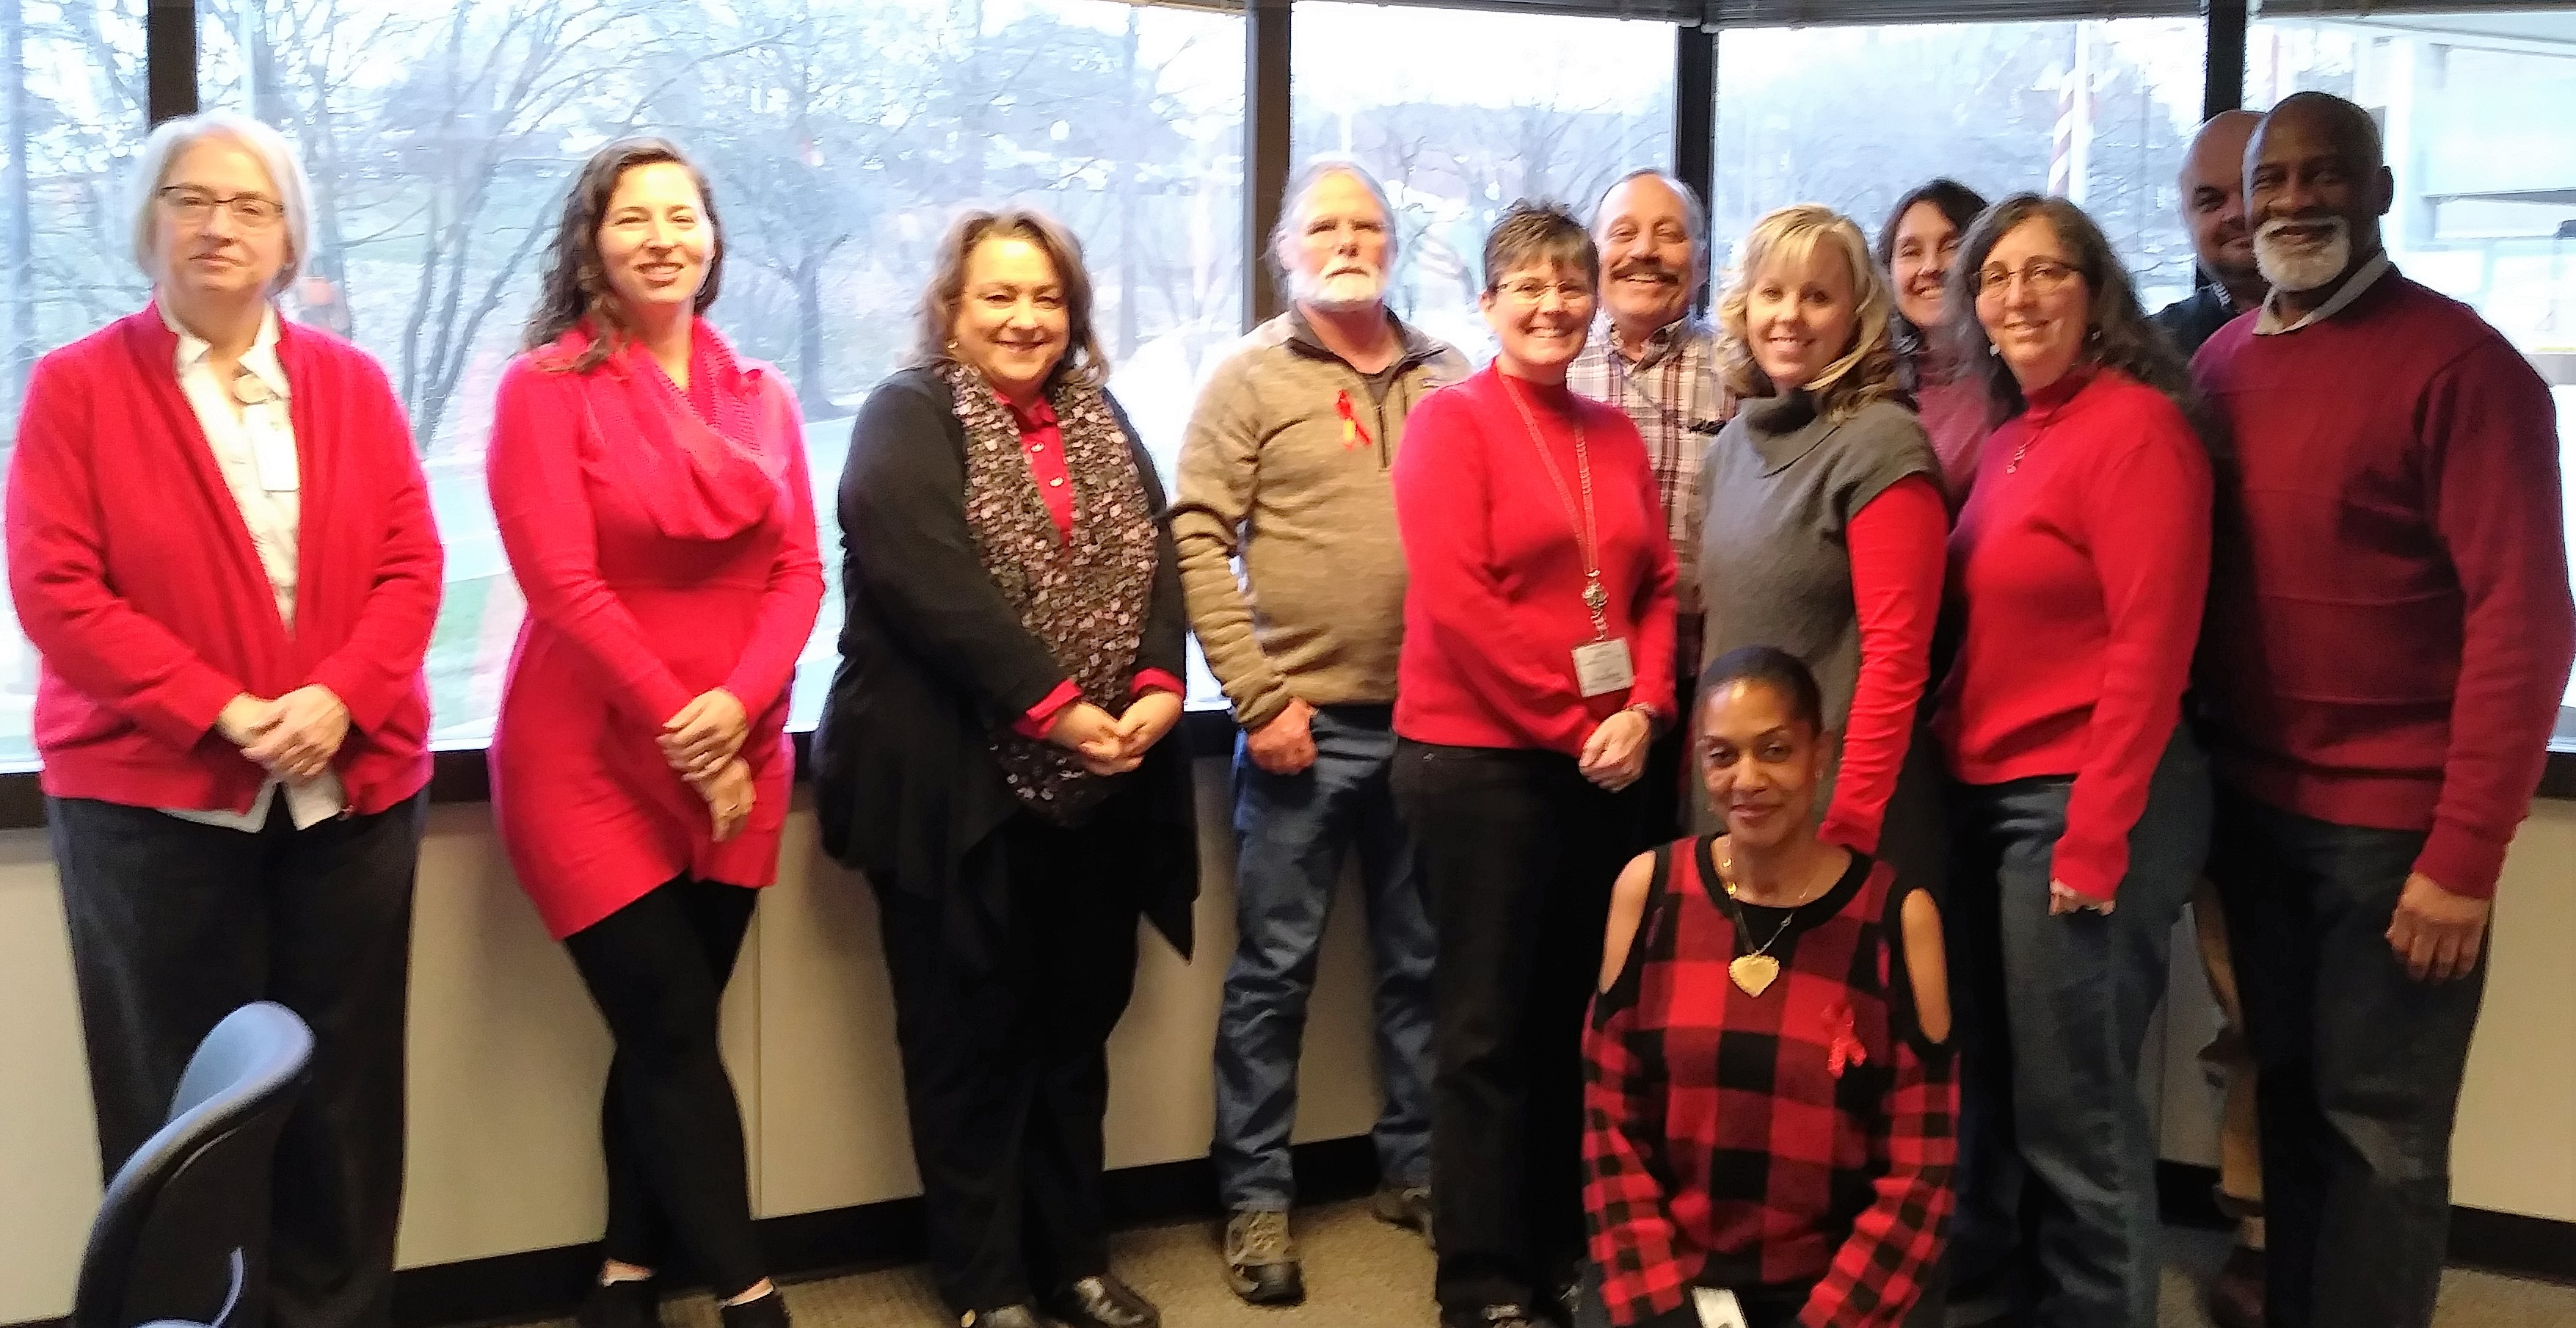 Employees in Knoxville wearing red to raise awareness about heart disease prevention.